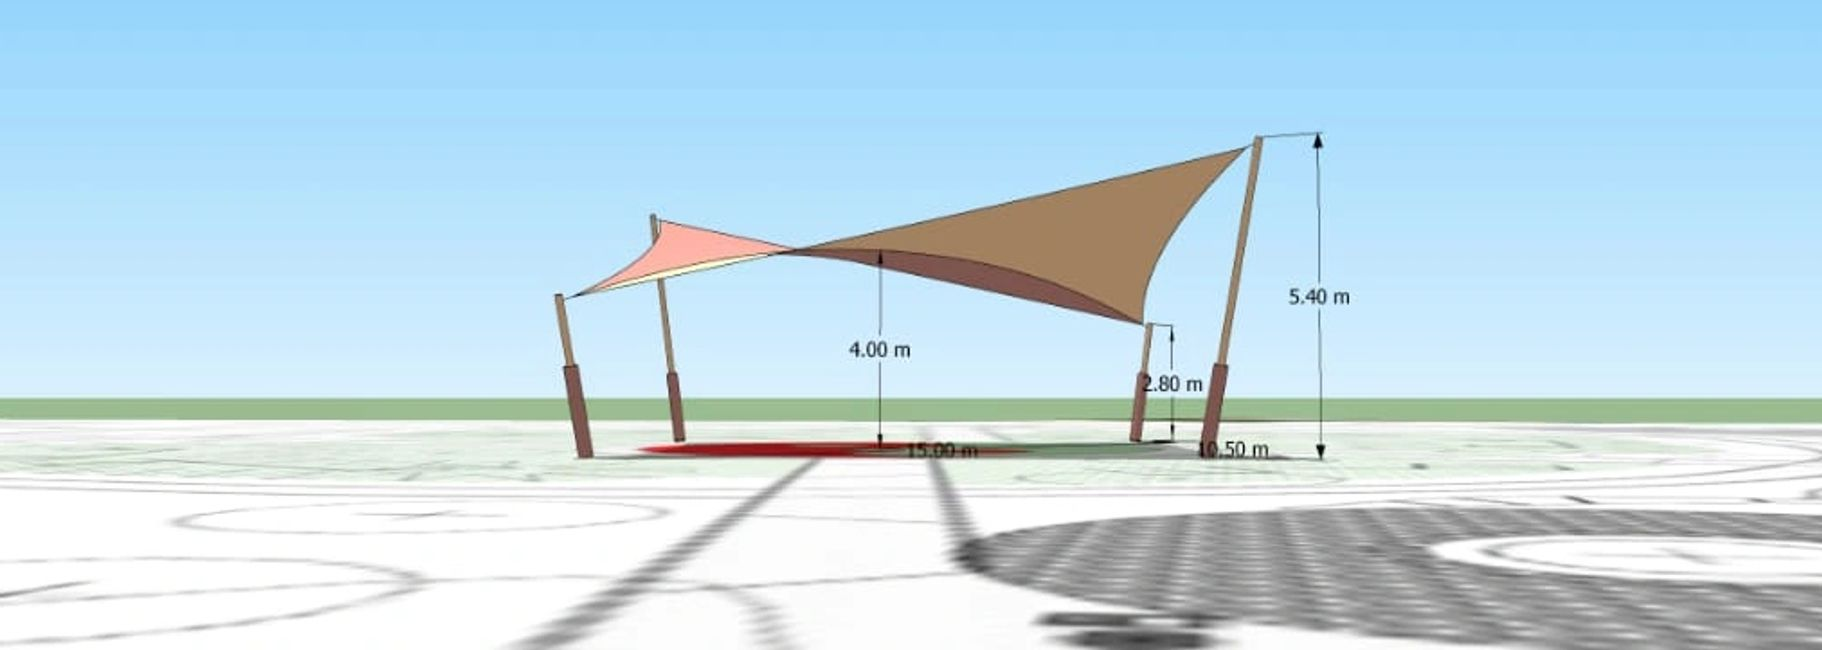 Computer generated design of a large shade sail, by Shadeports Plus Ltd. Cyprus